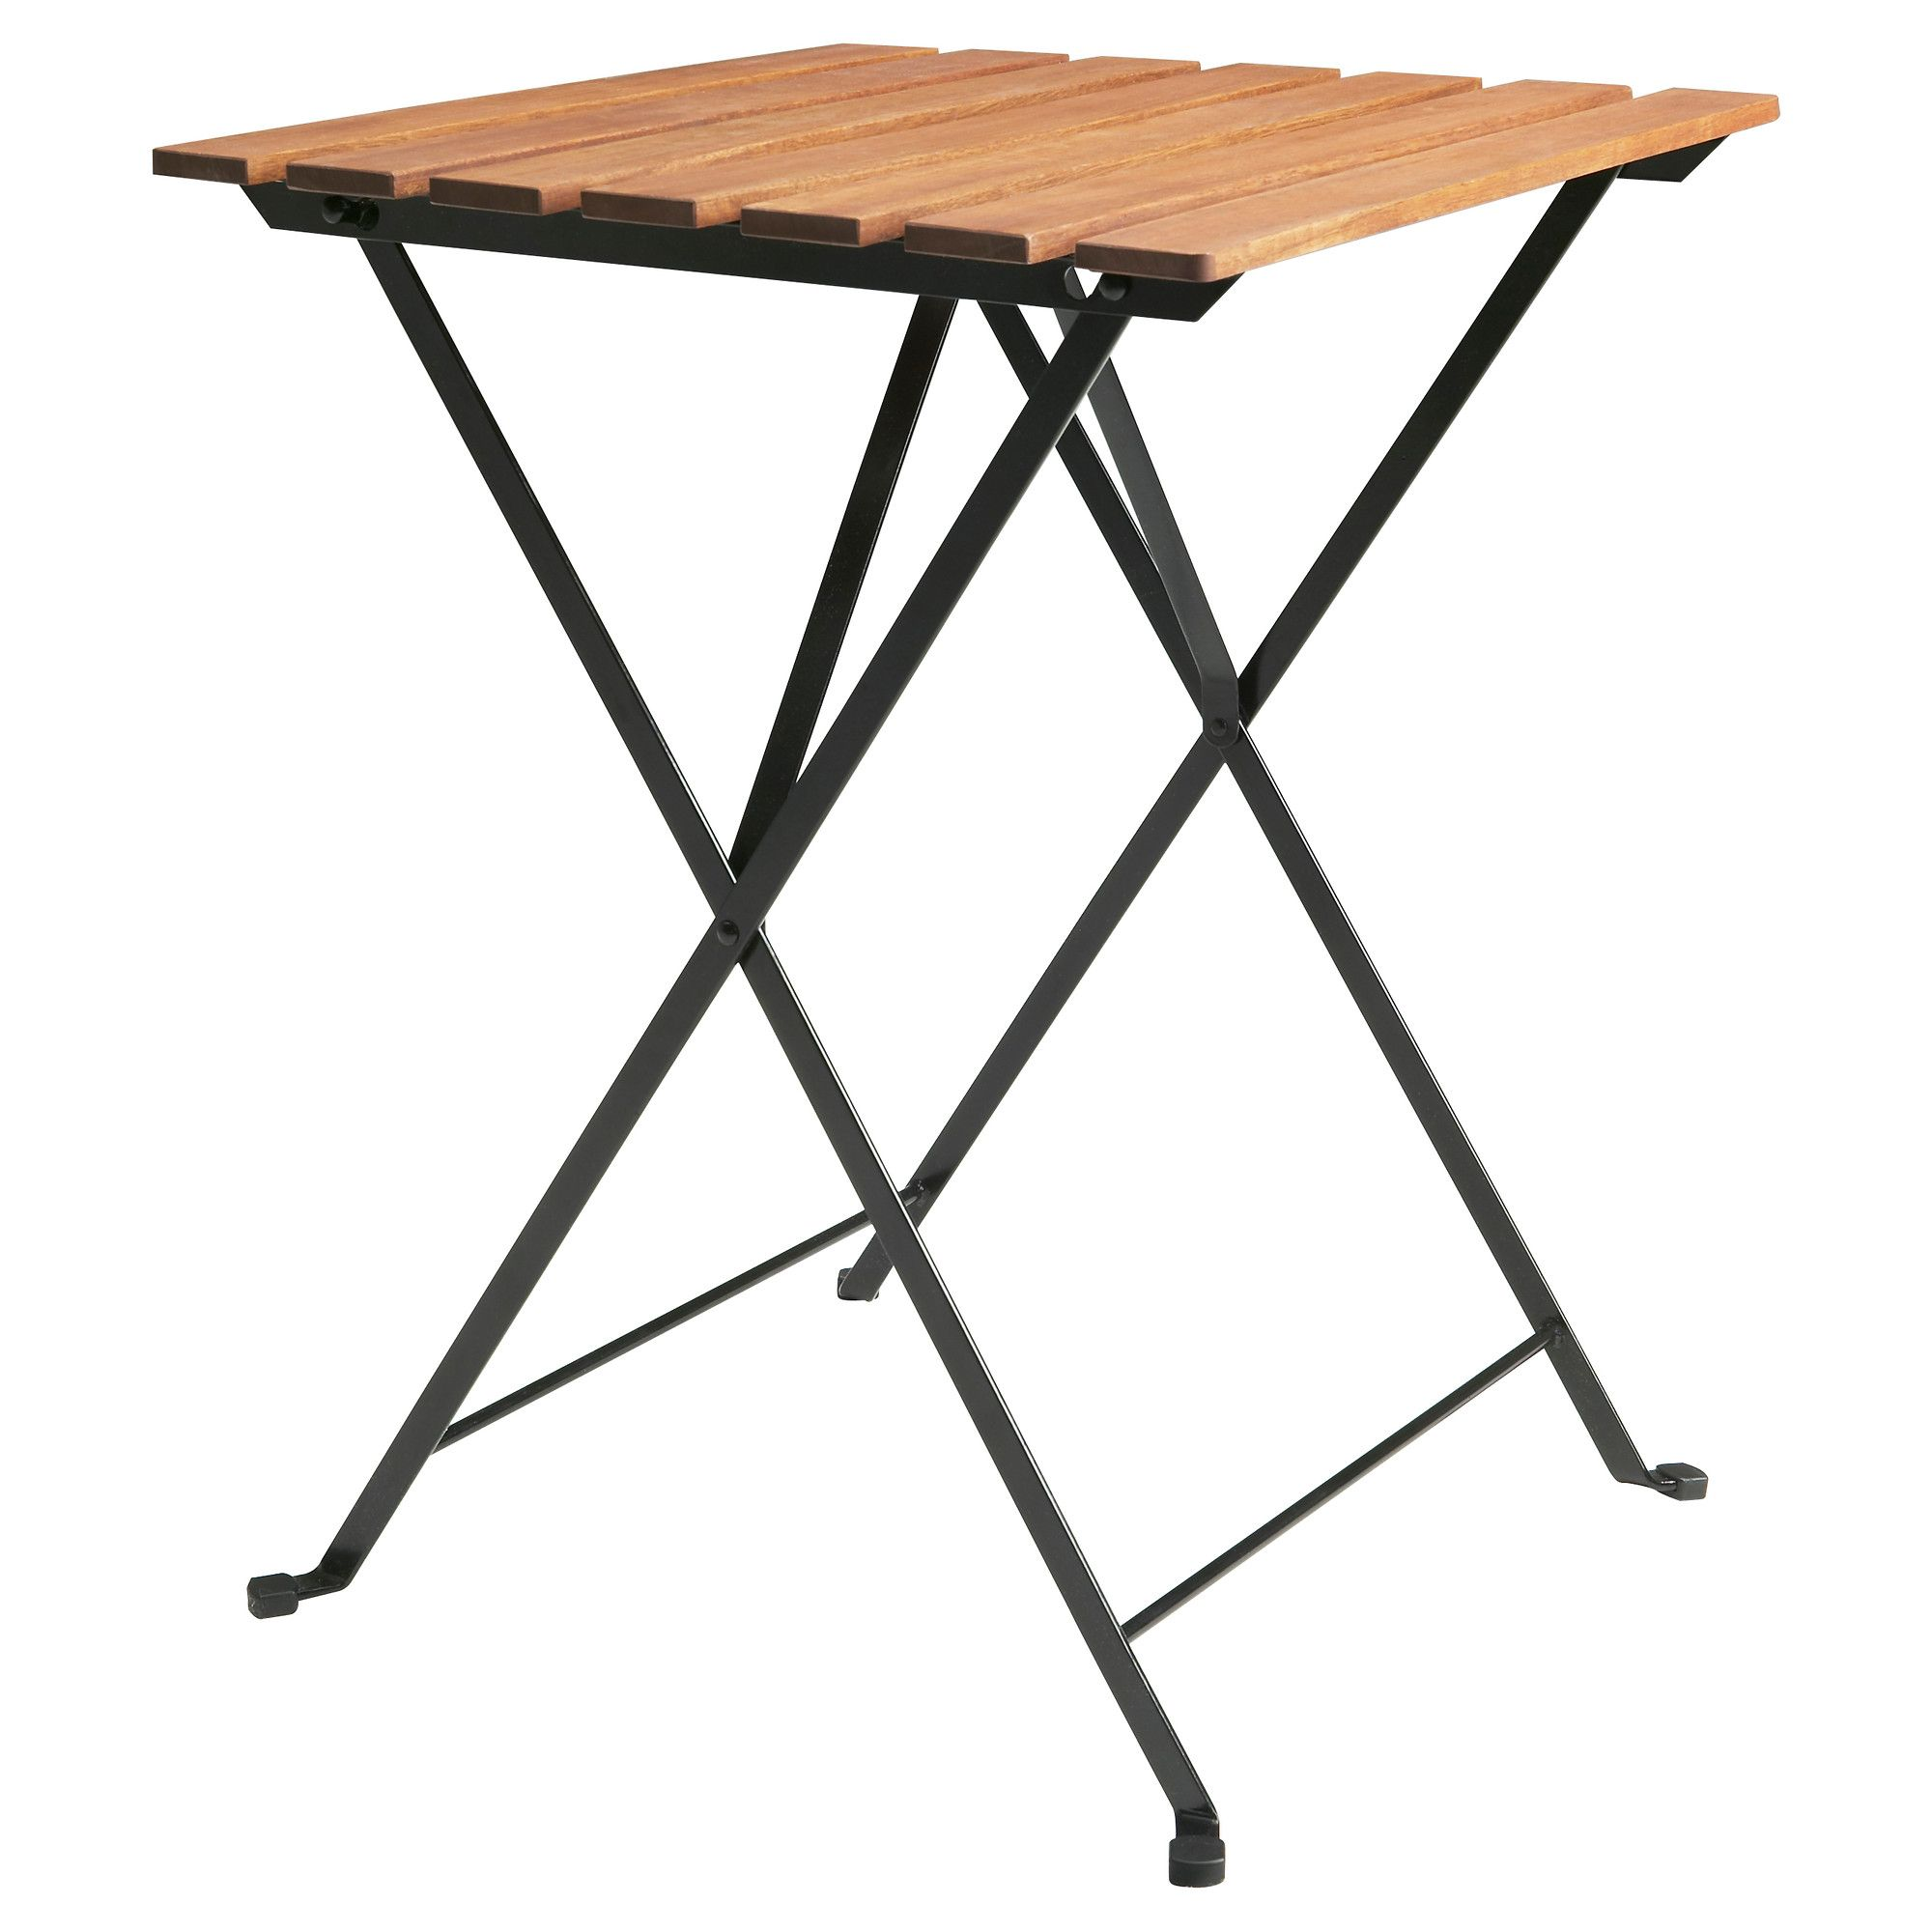 Tarno Table Outdoor Black Acacia Grey Brown Stained Steel Light Brown Stained Ikea Outdoor Folding Table Ikea Outdoor Furniture Ikea Folding Table